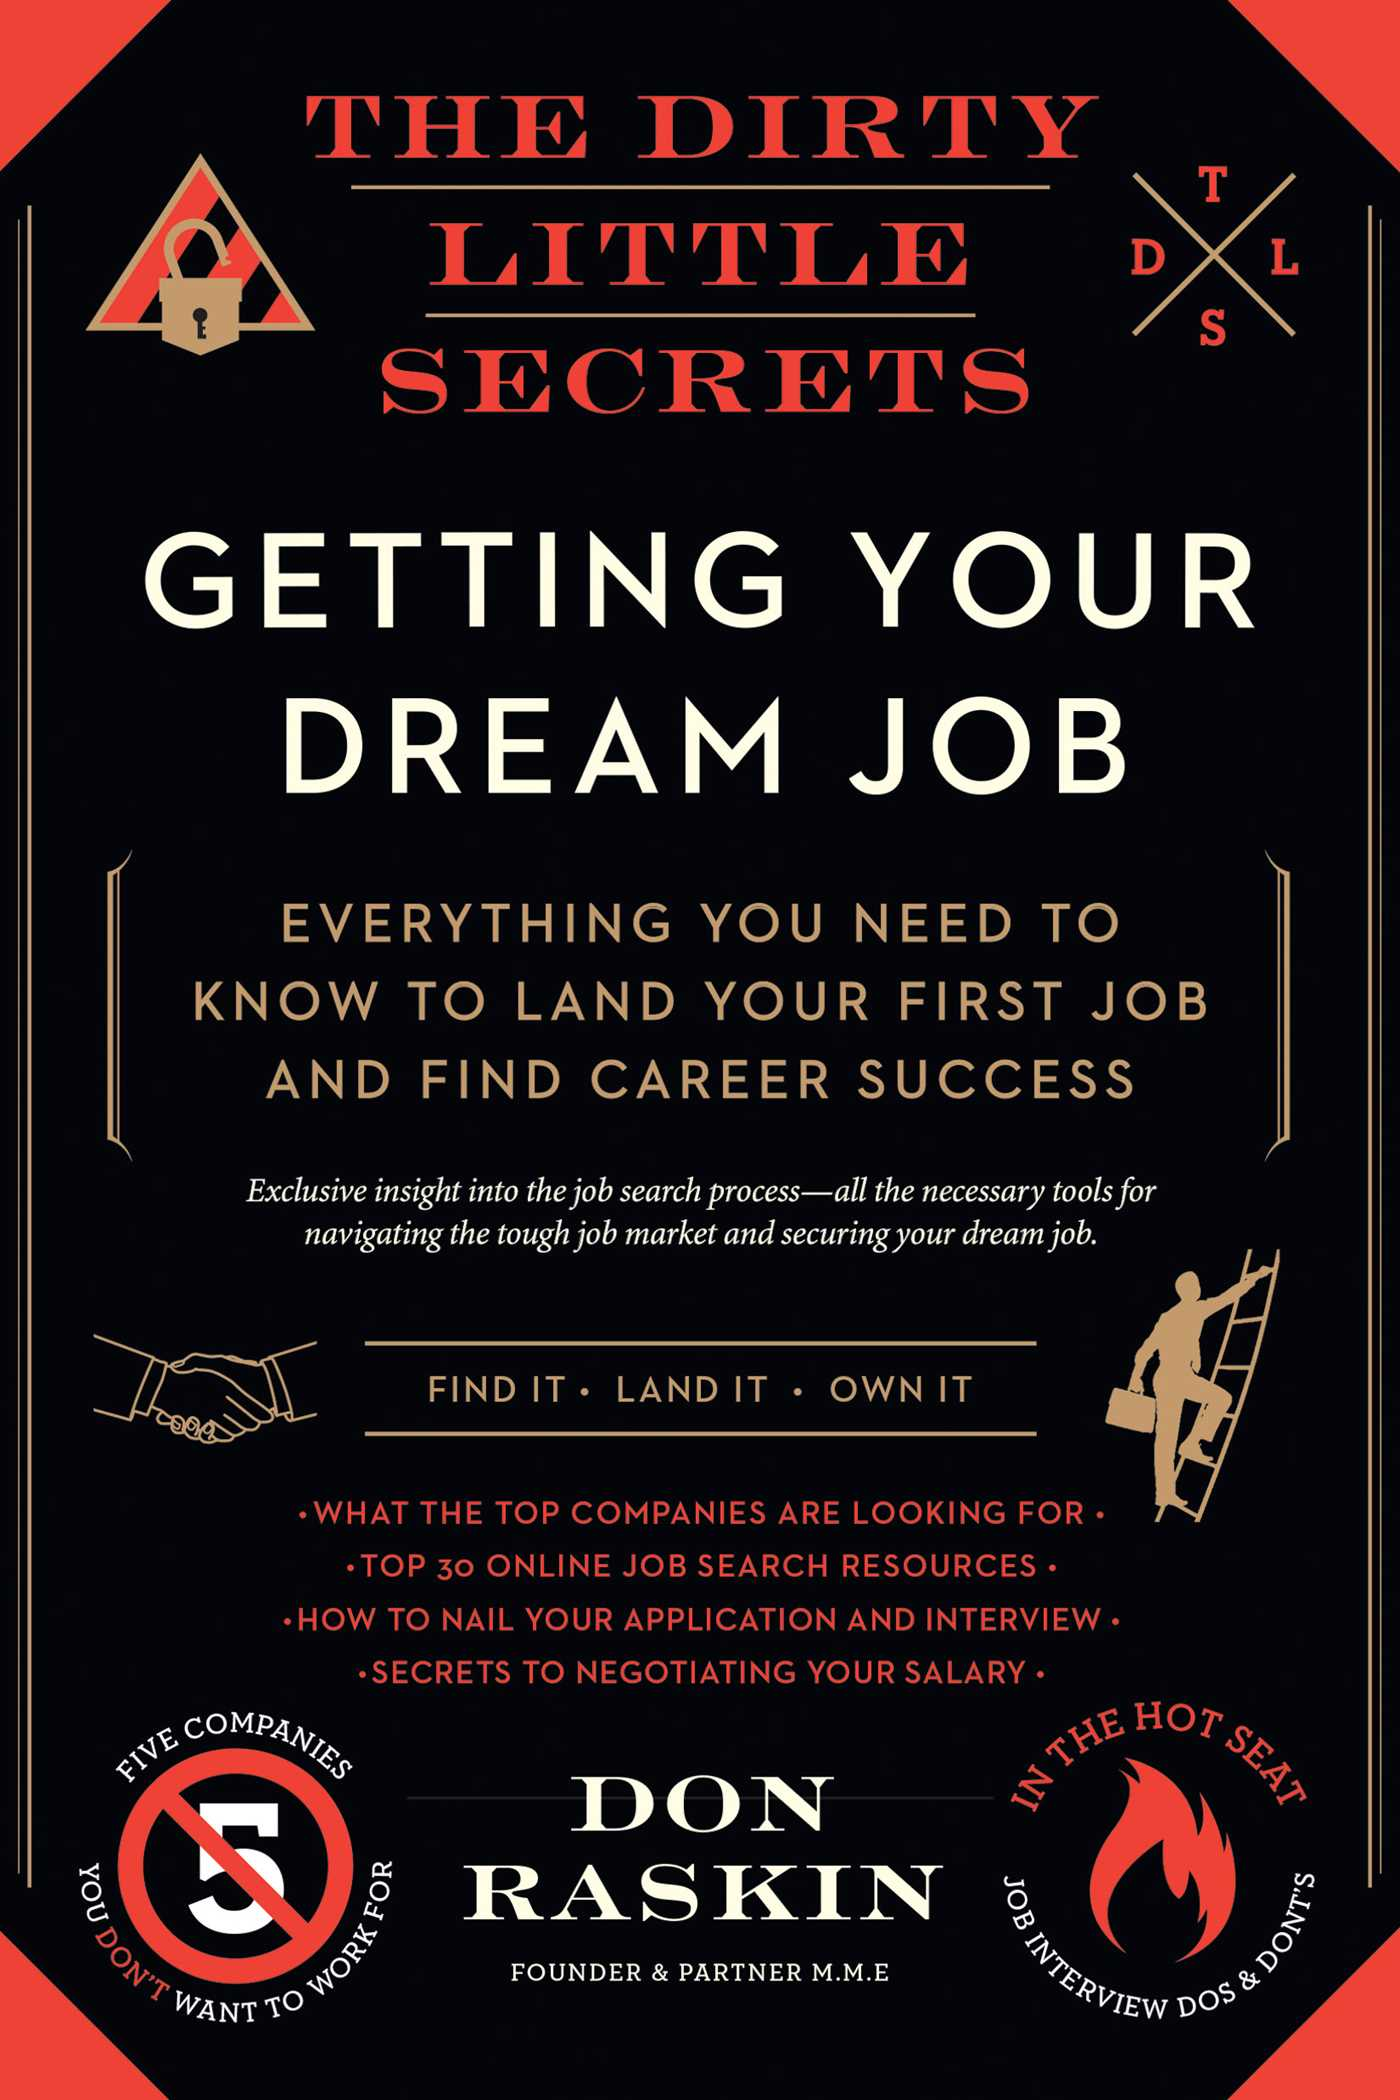 The Dirty Little Secrets Of Getting Your Dream Job Book By Don